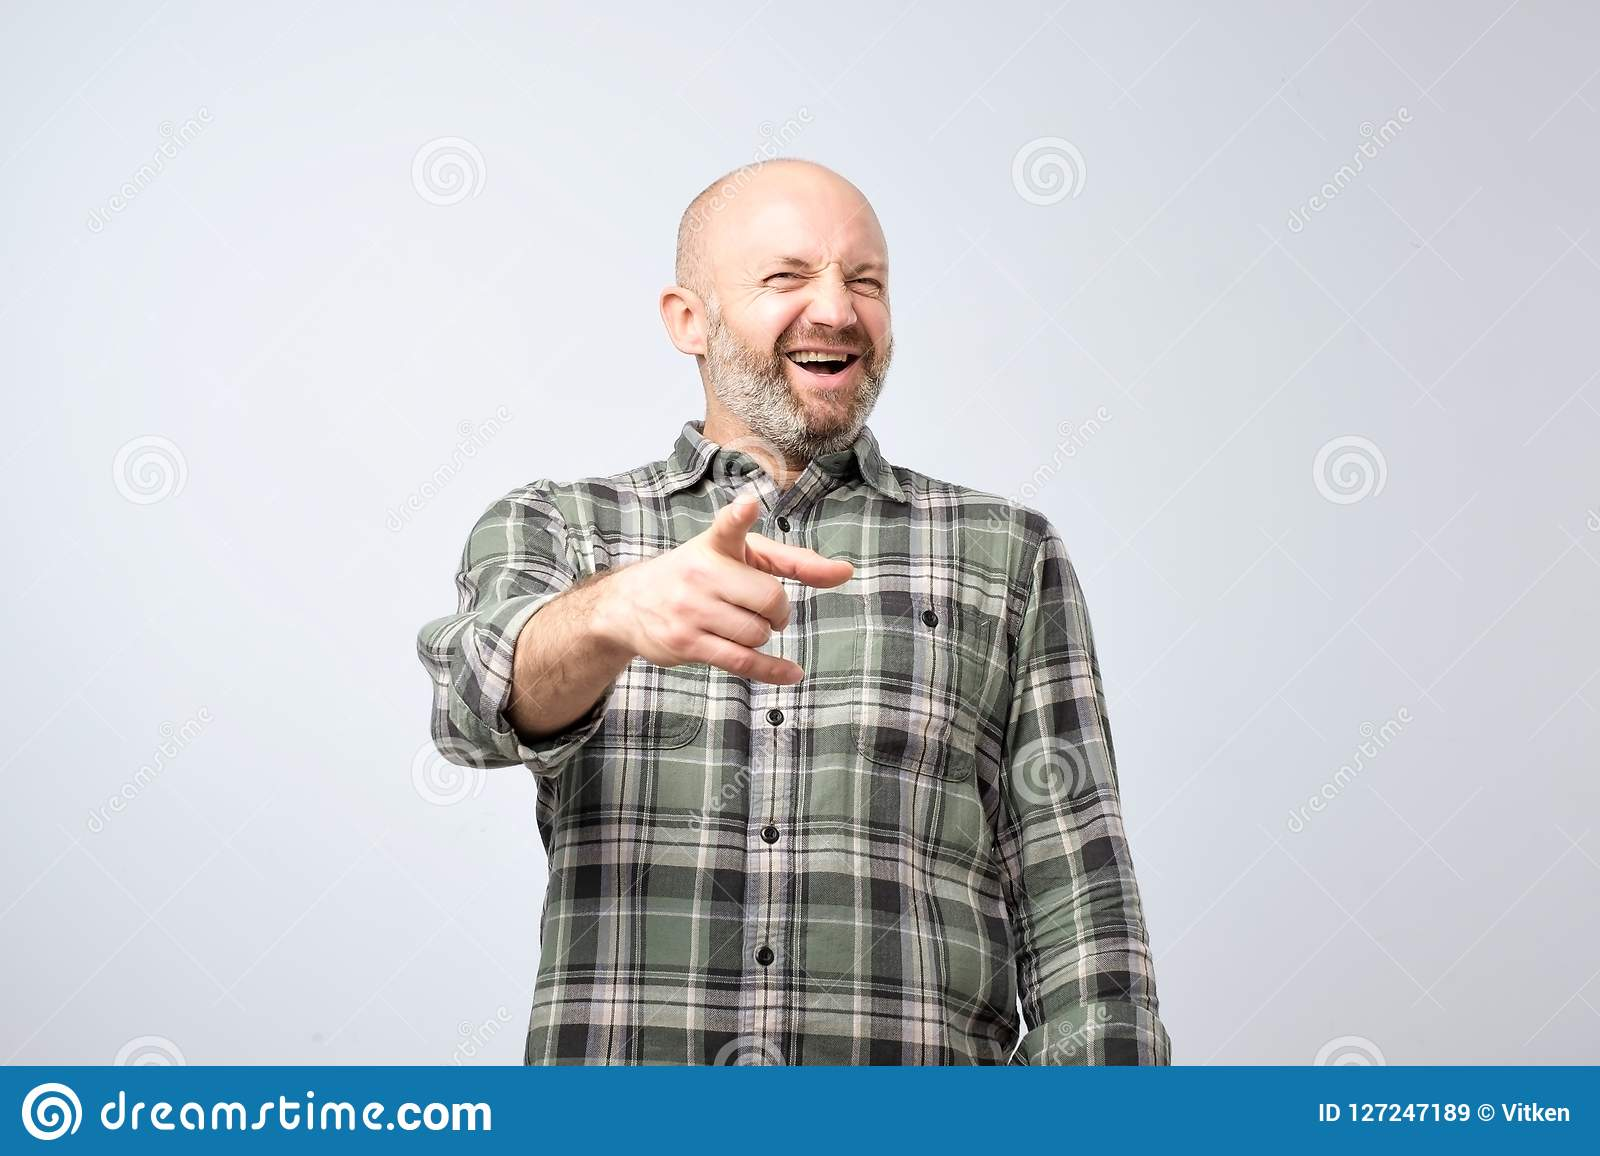 Mock or bad joke concept. Mature man pointing finger and toothy smile.